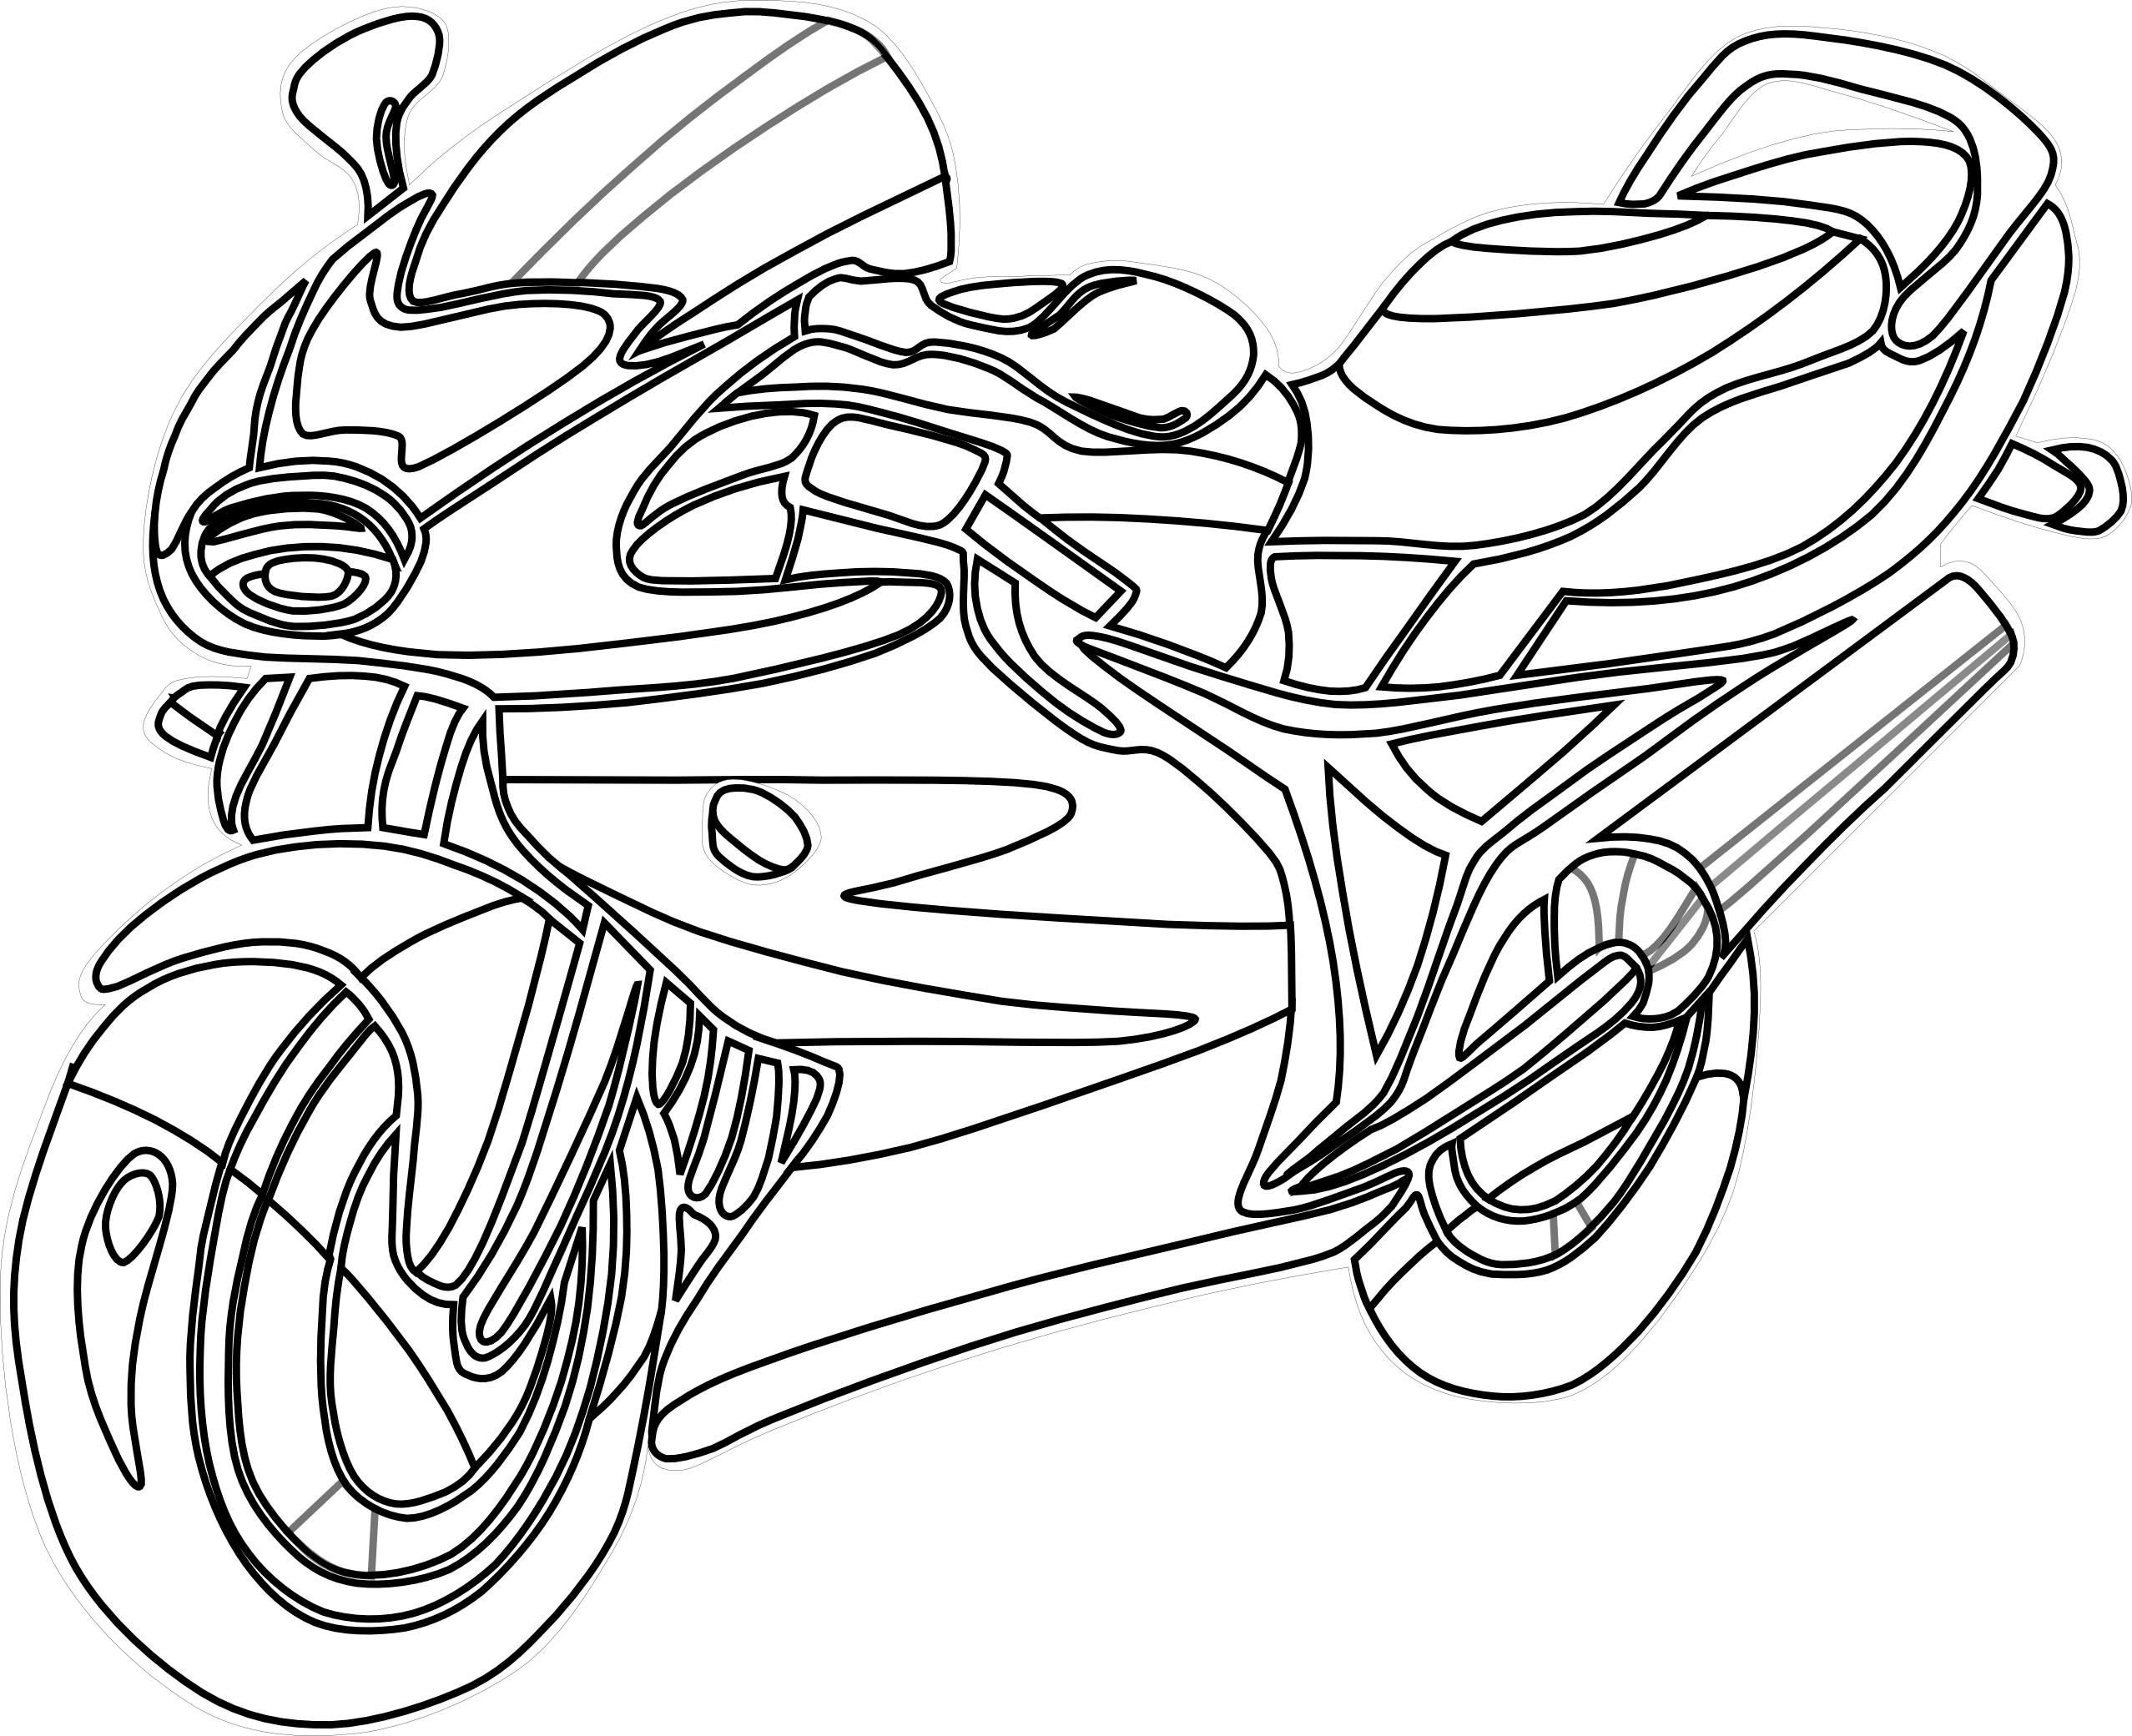 And Black White Motorcycle Clipart - Clipart Kid